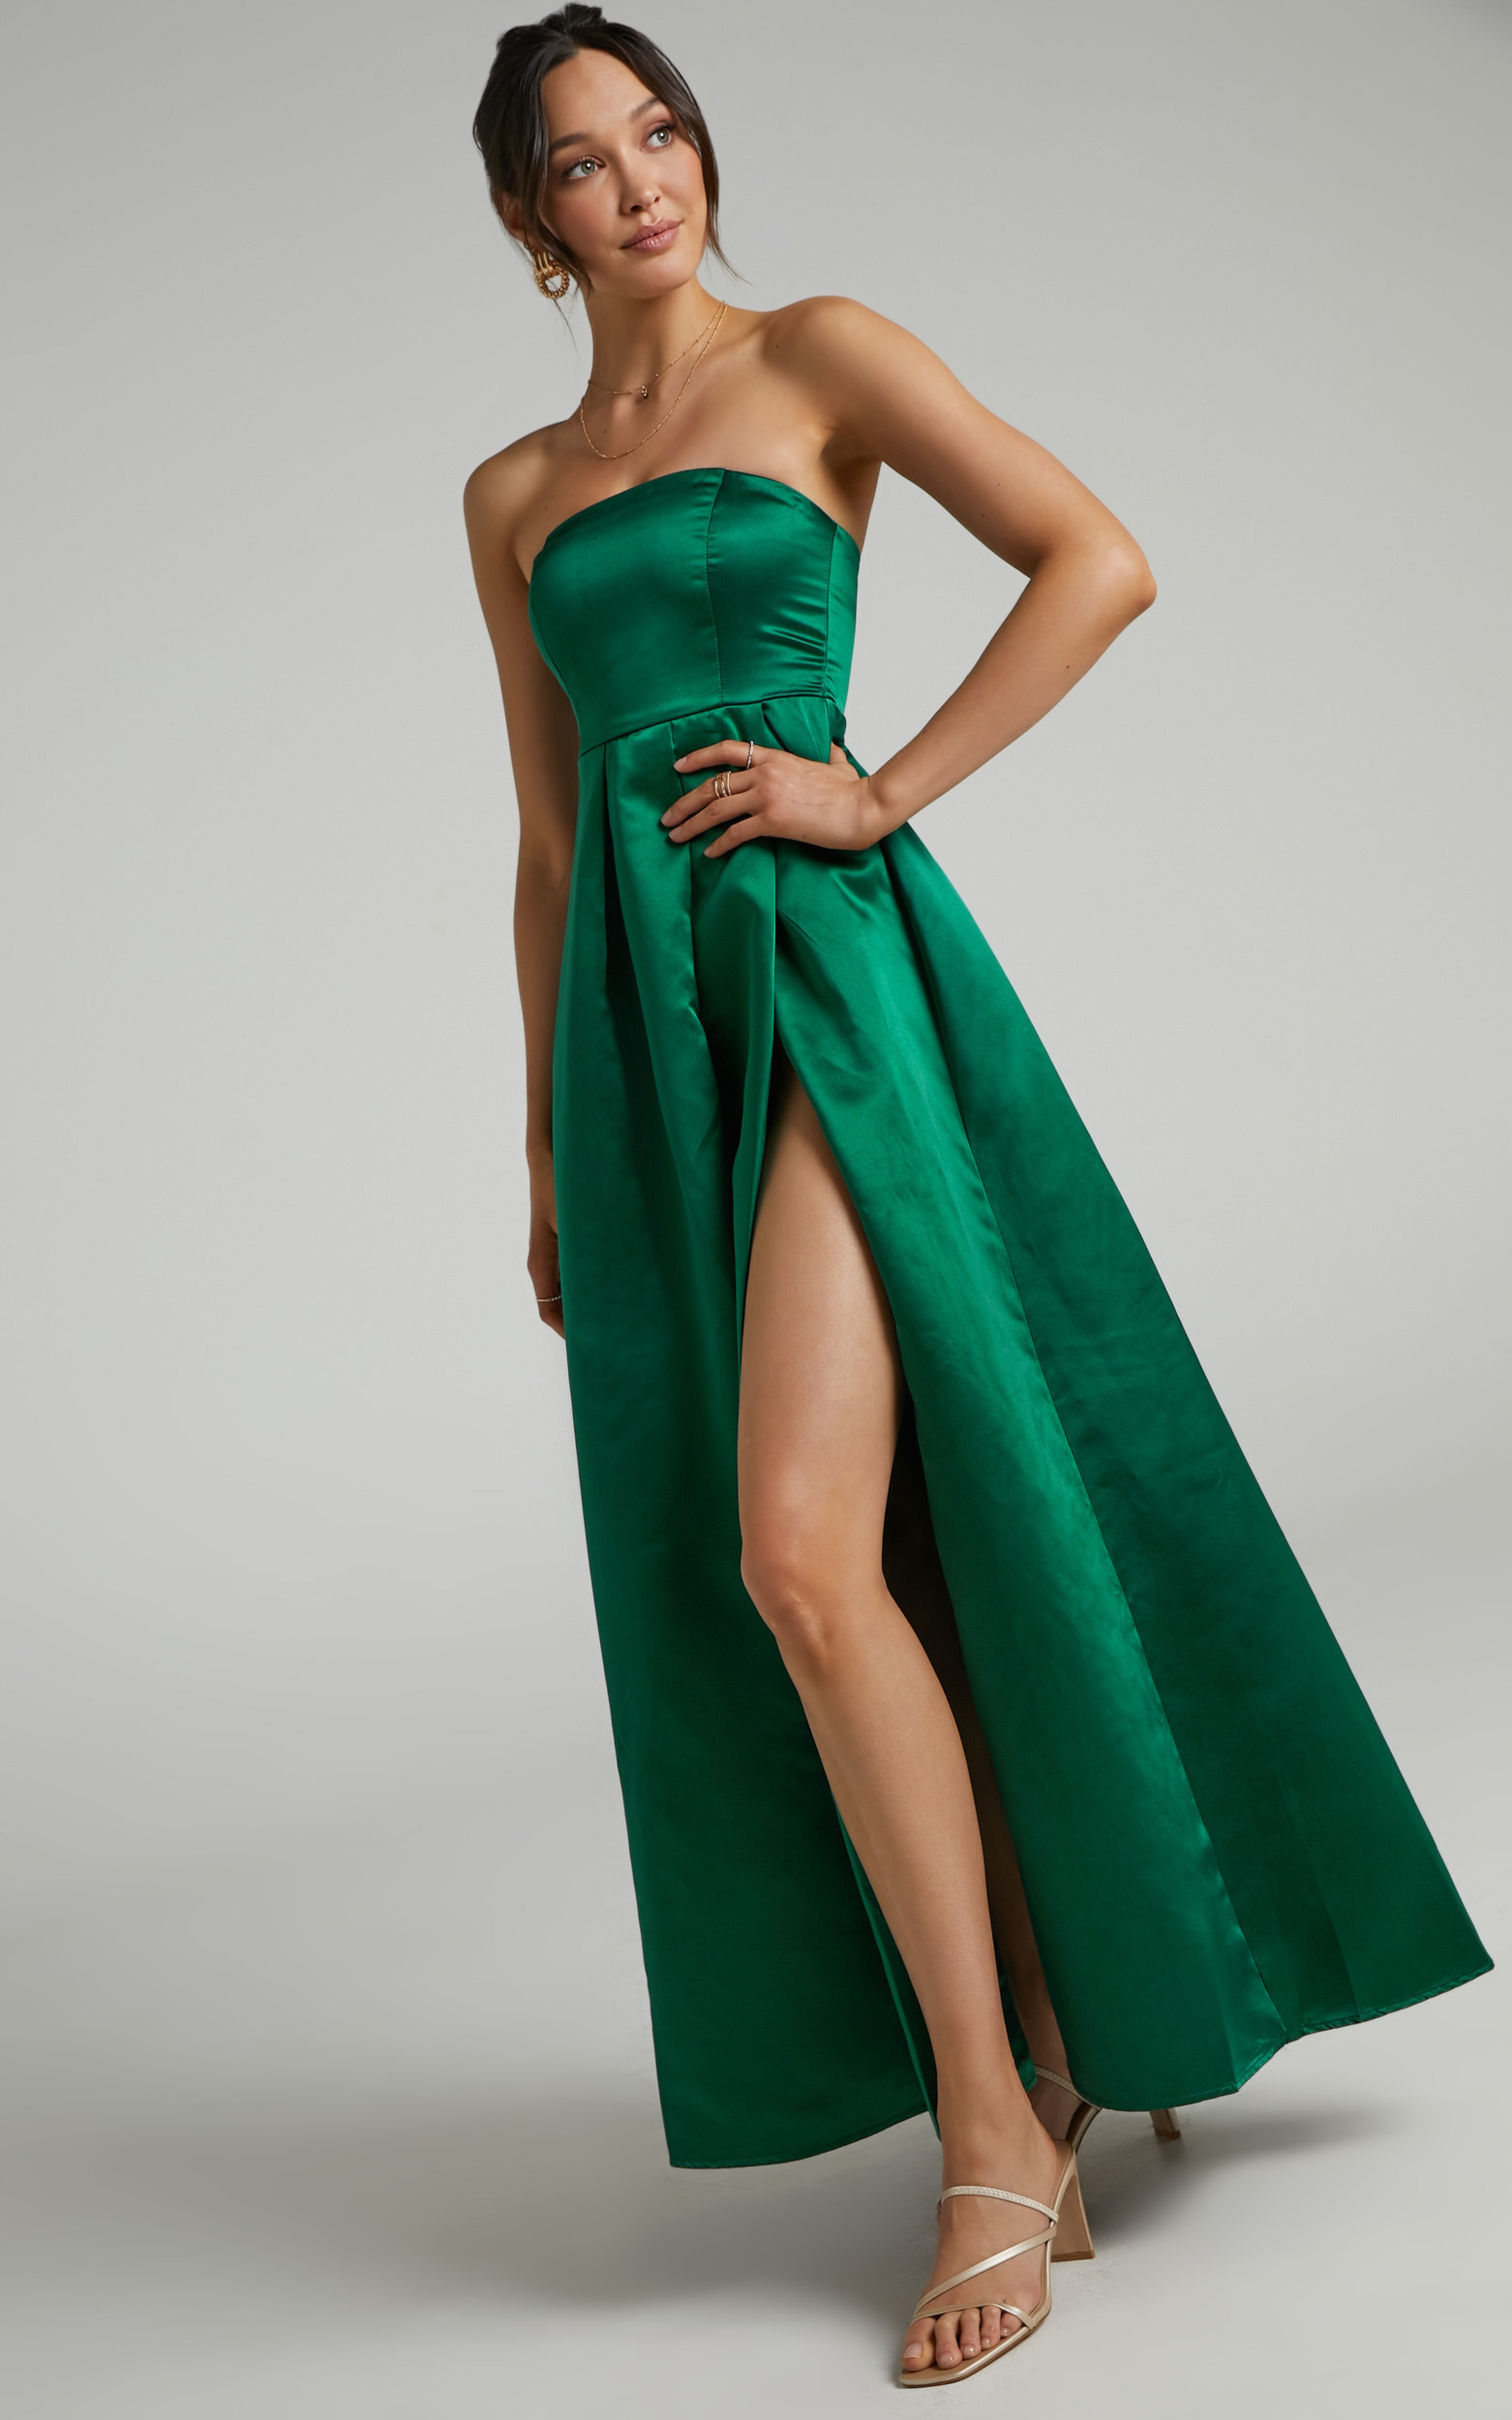 Queen Of The Show Strapless Maxi Dress in Emerald Satin - 04, GRN1, hi-res image number null